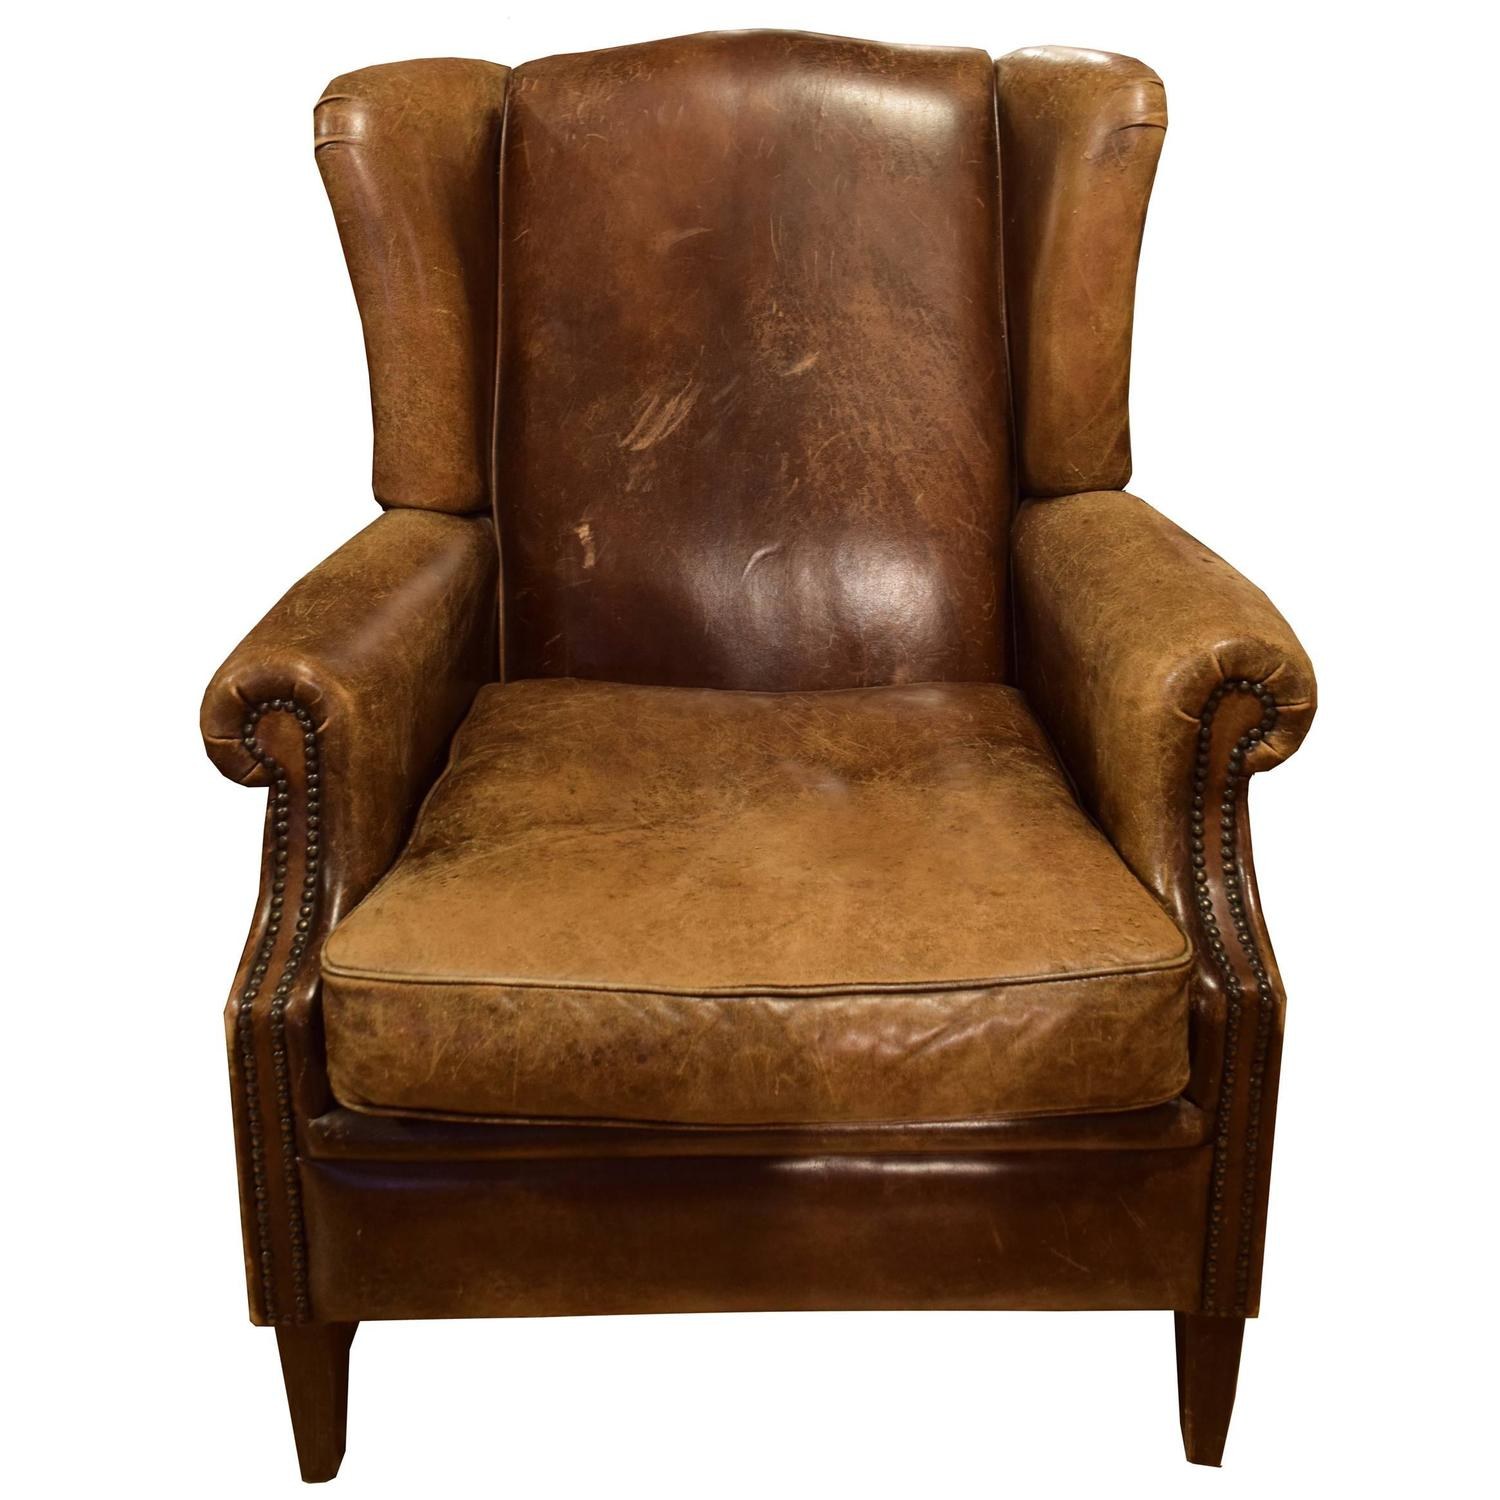 Leather wingback chair from italy for sale at 1stdibs for Leather wingback recliner sale